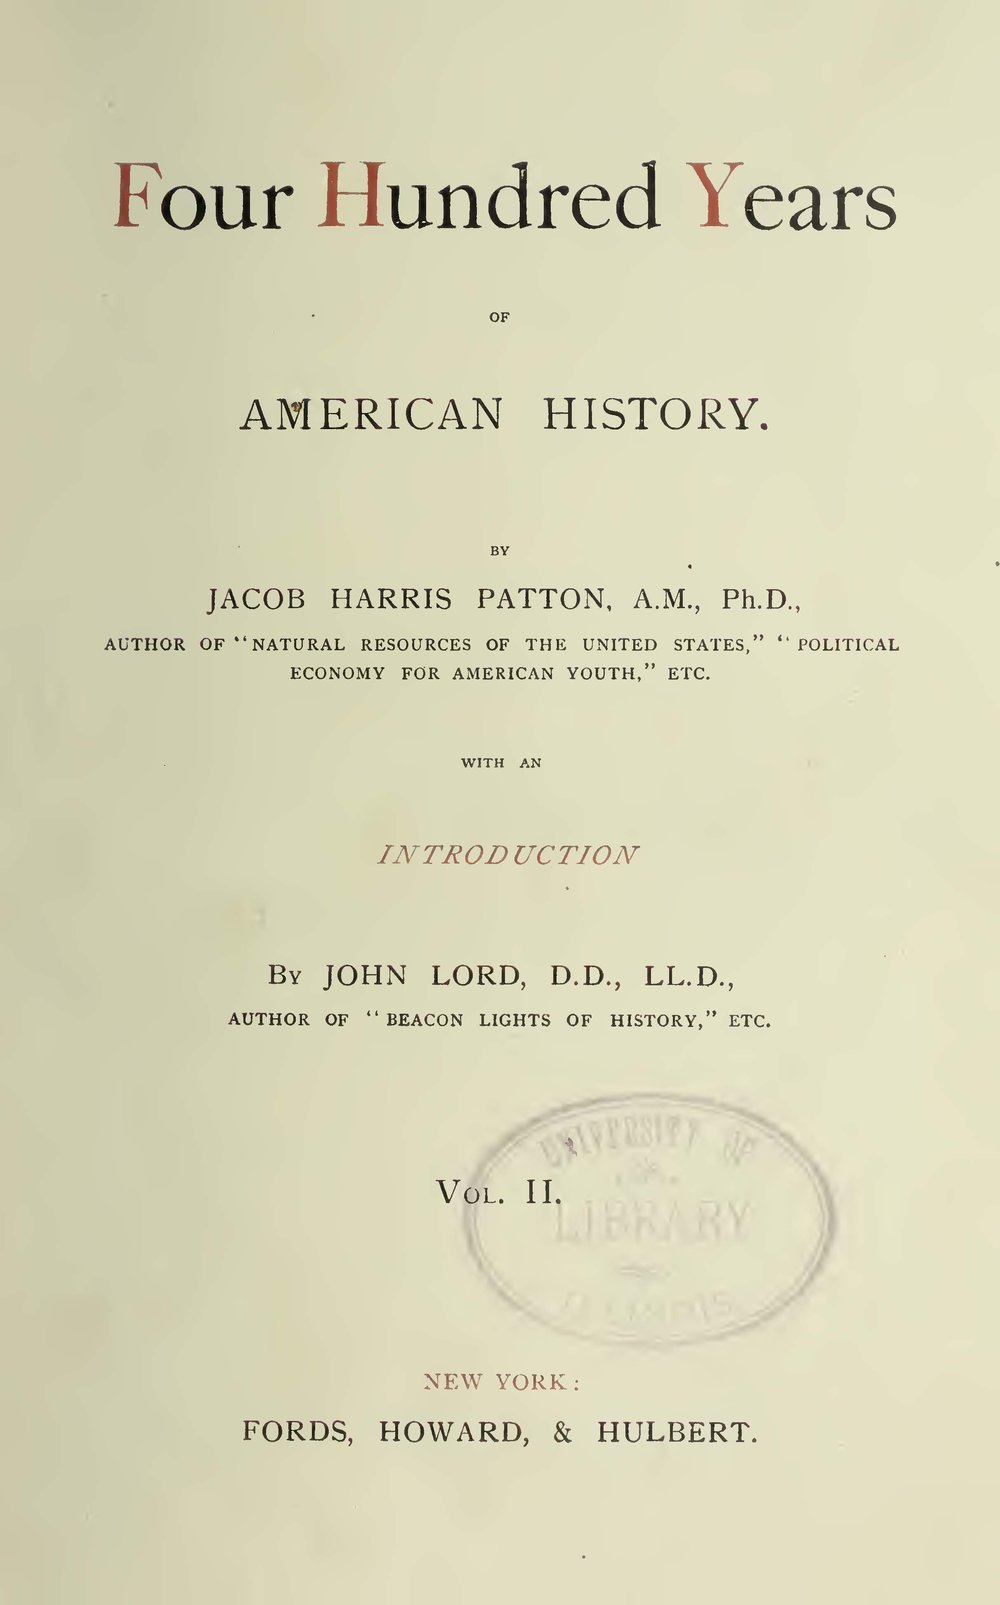 Patton, Jacob Harris, Four Hundred Years of American History, Vol. 2 Title Page.jpg